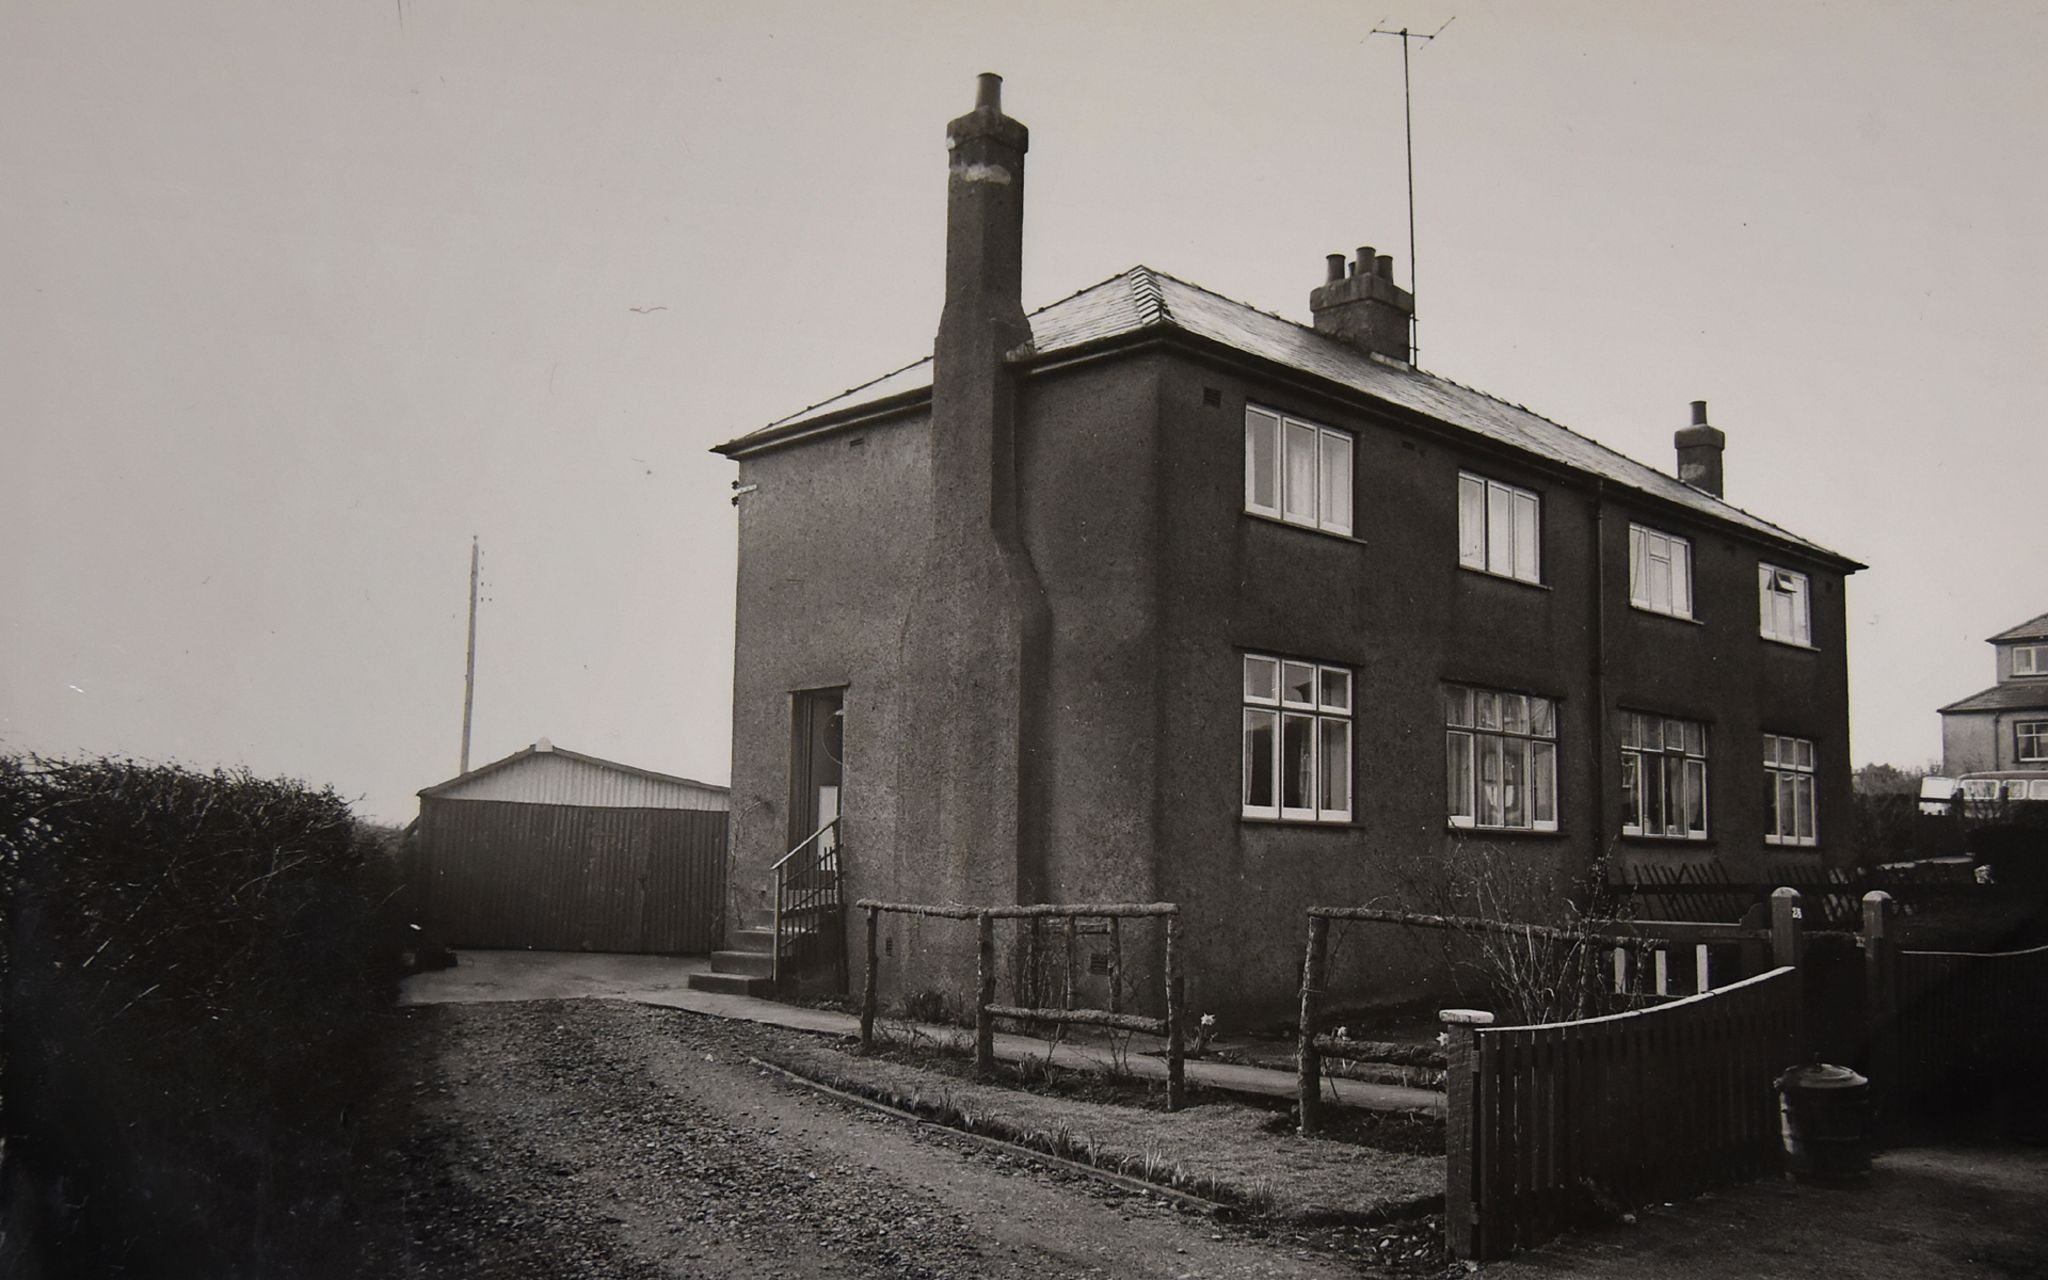 The house where John West was murdered